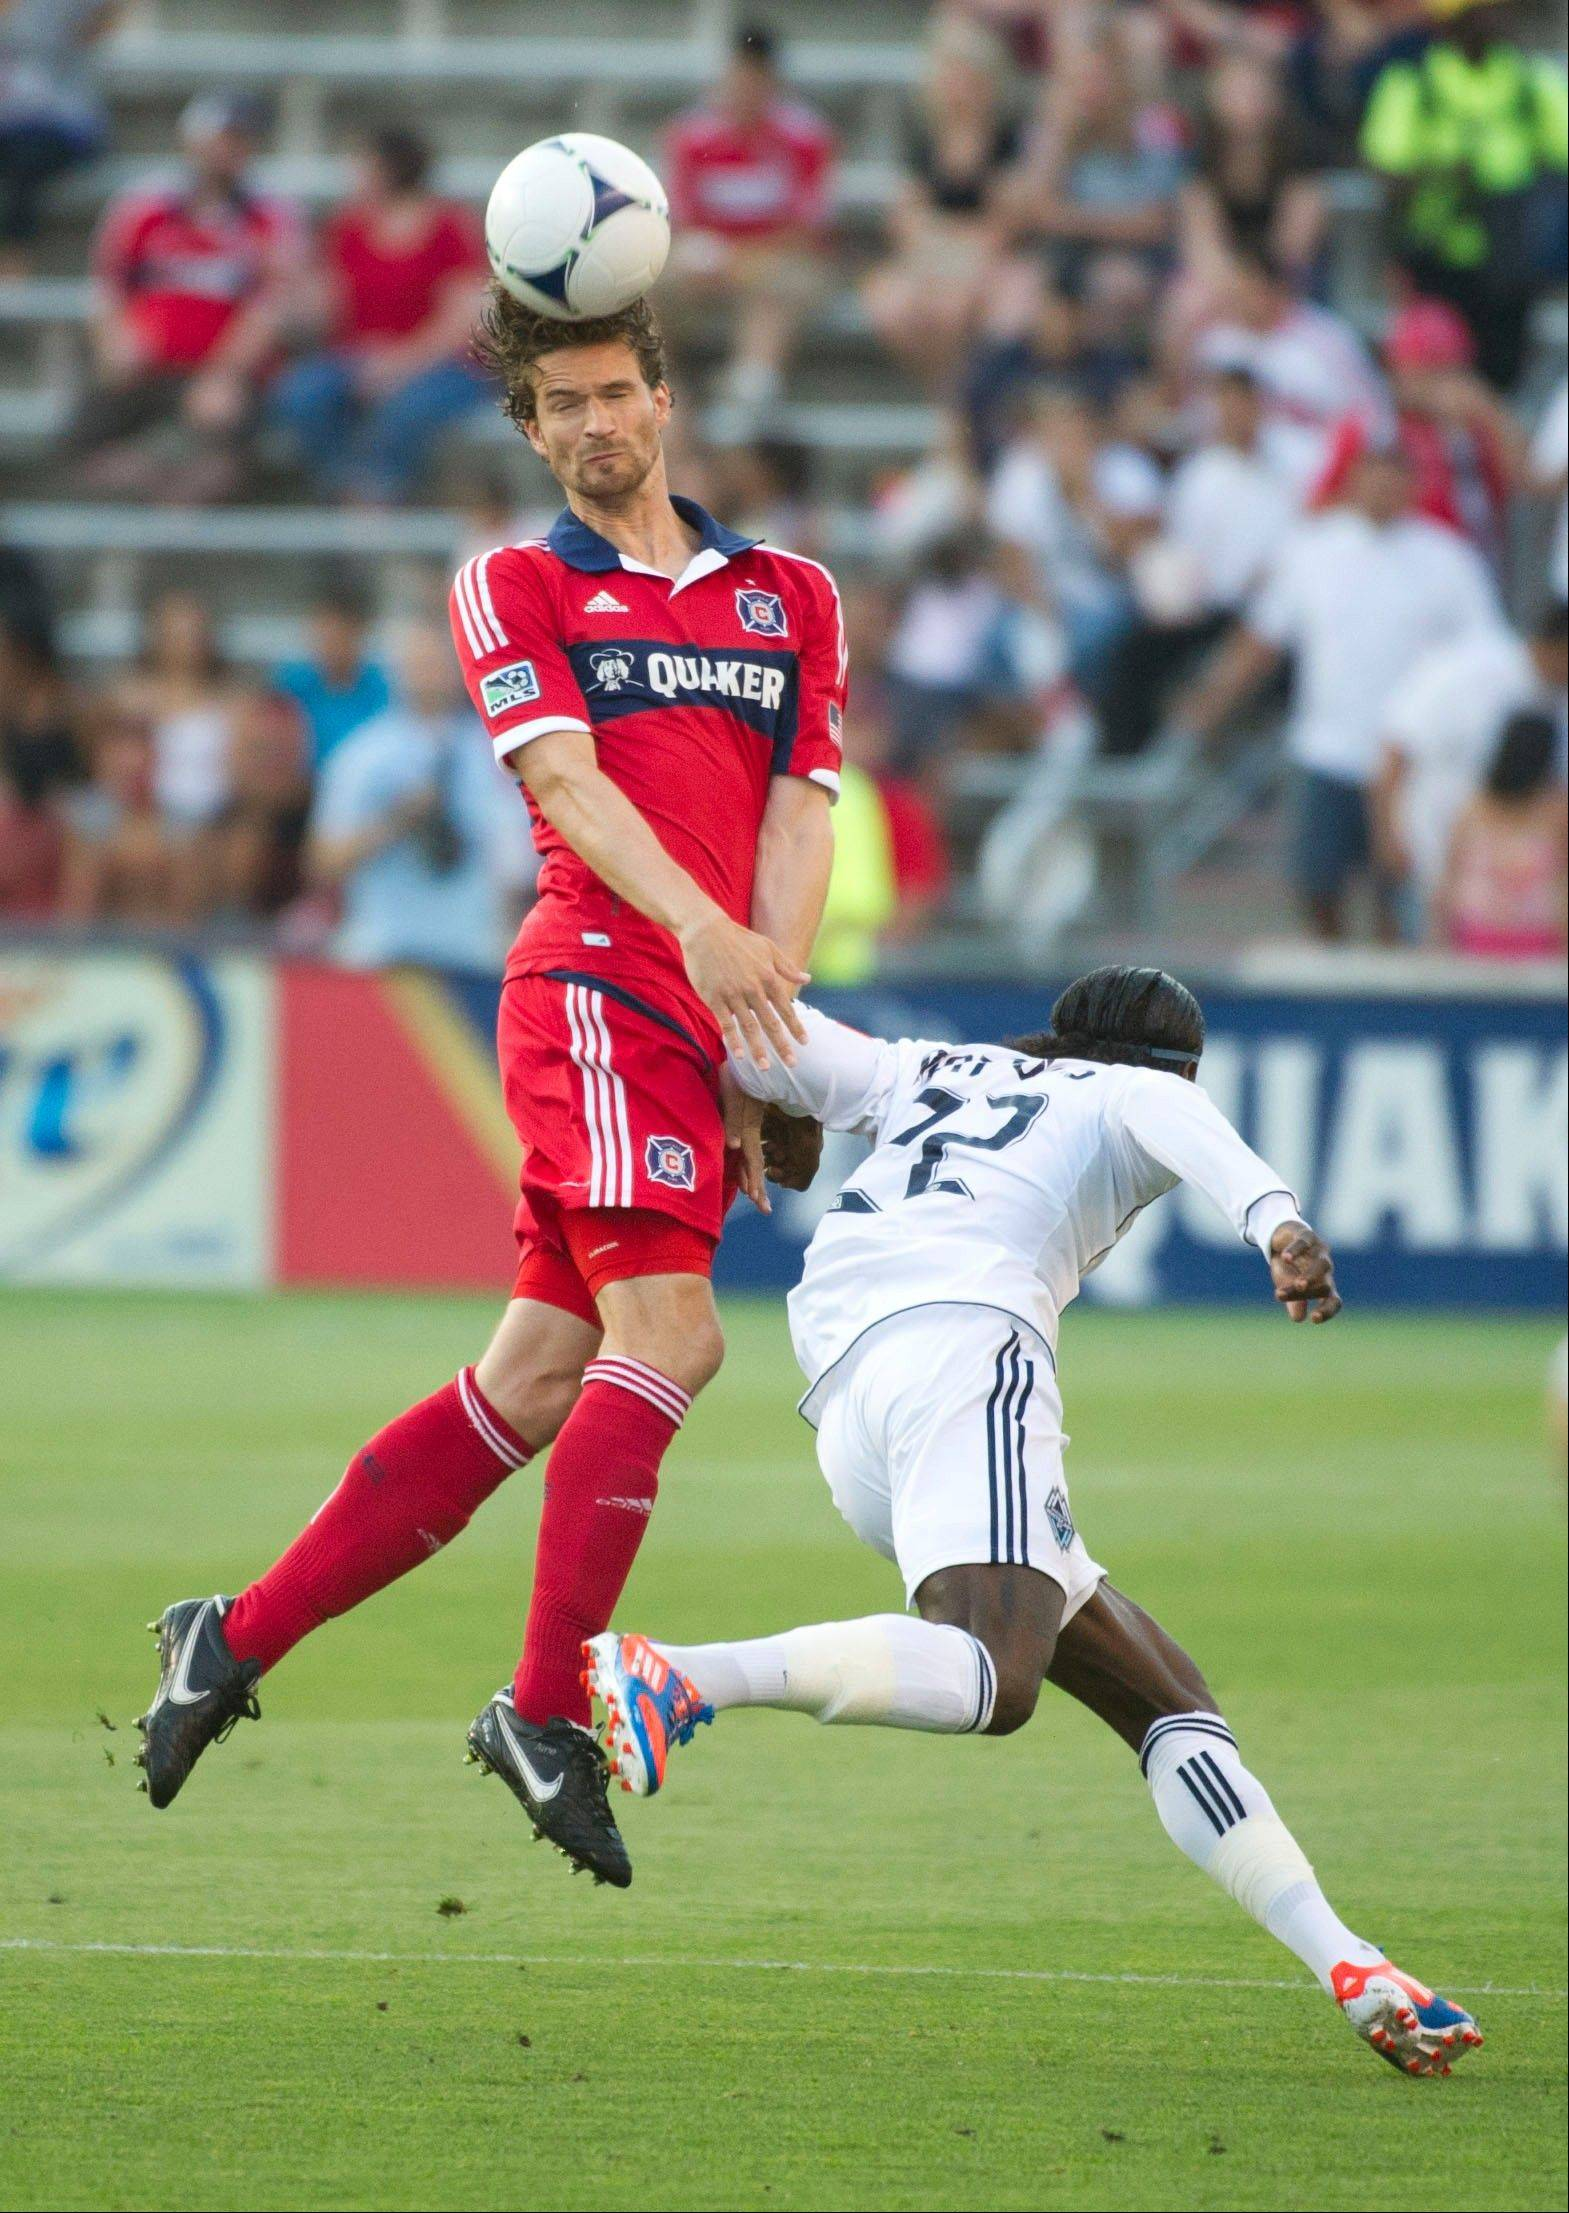 Chicago Fire defender Arne Friedrich, left, and Vancouver Whitecaps FC forward Darren Mattocks go for the ball during the first half an MLS soccer game July 14, 2012, at Toyota Park in Bridgeview.